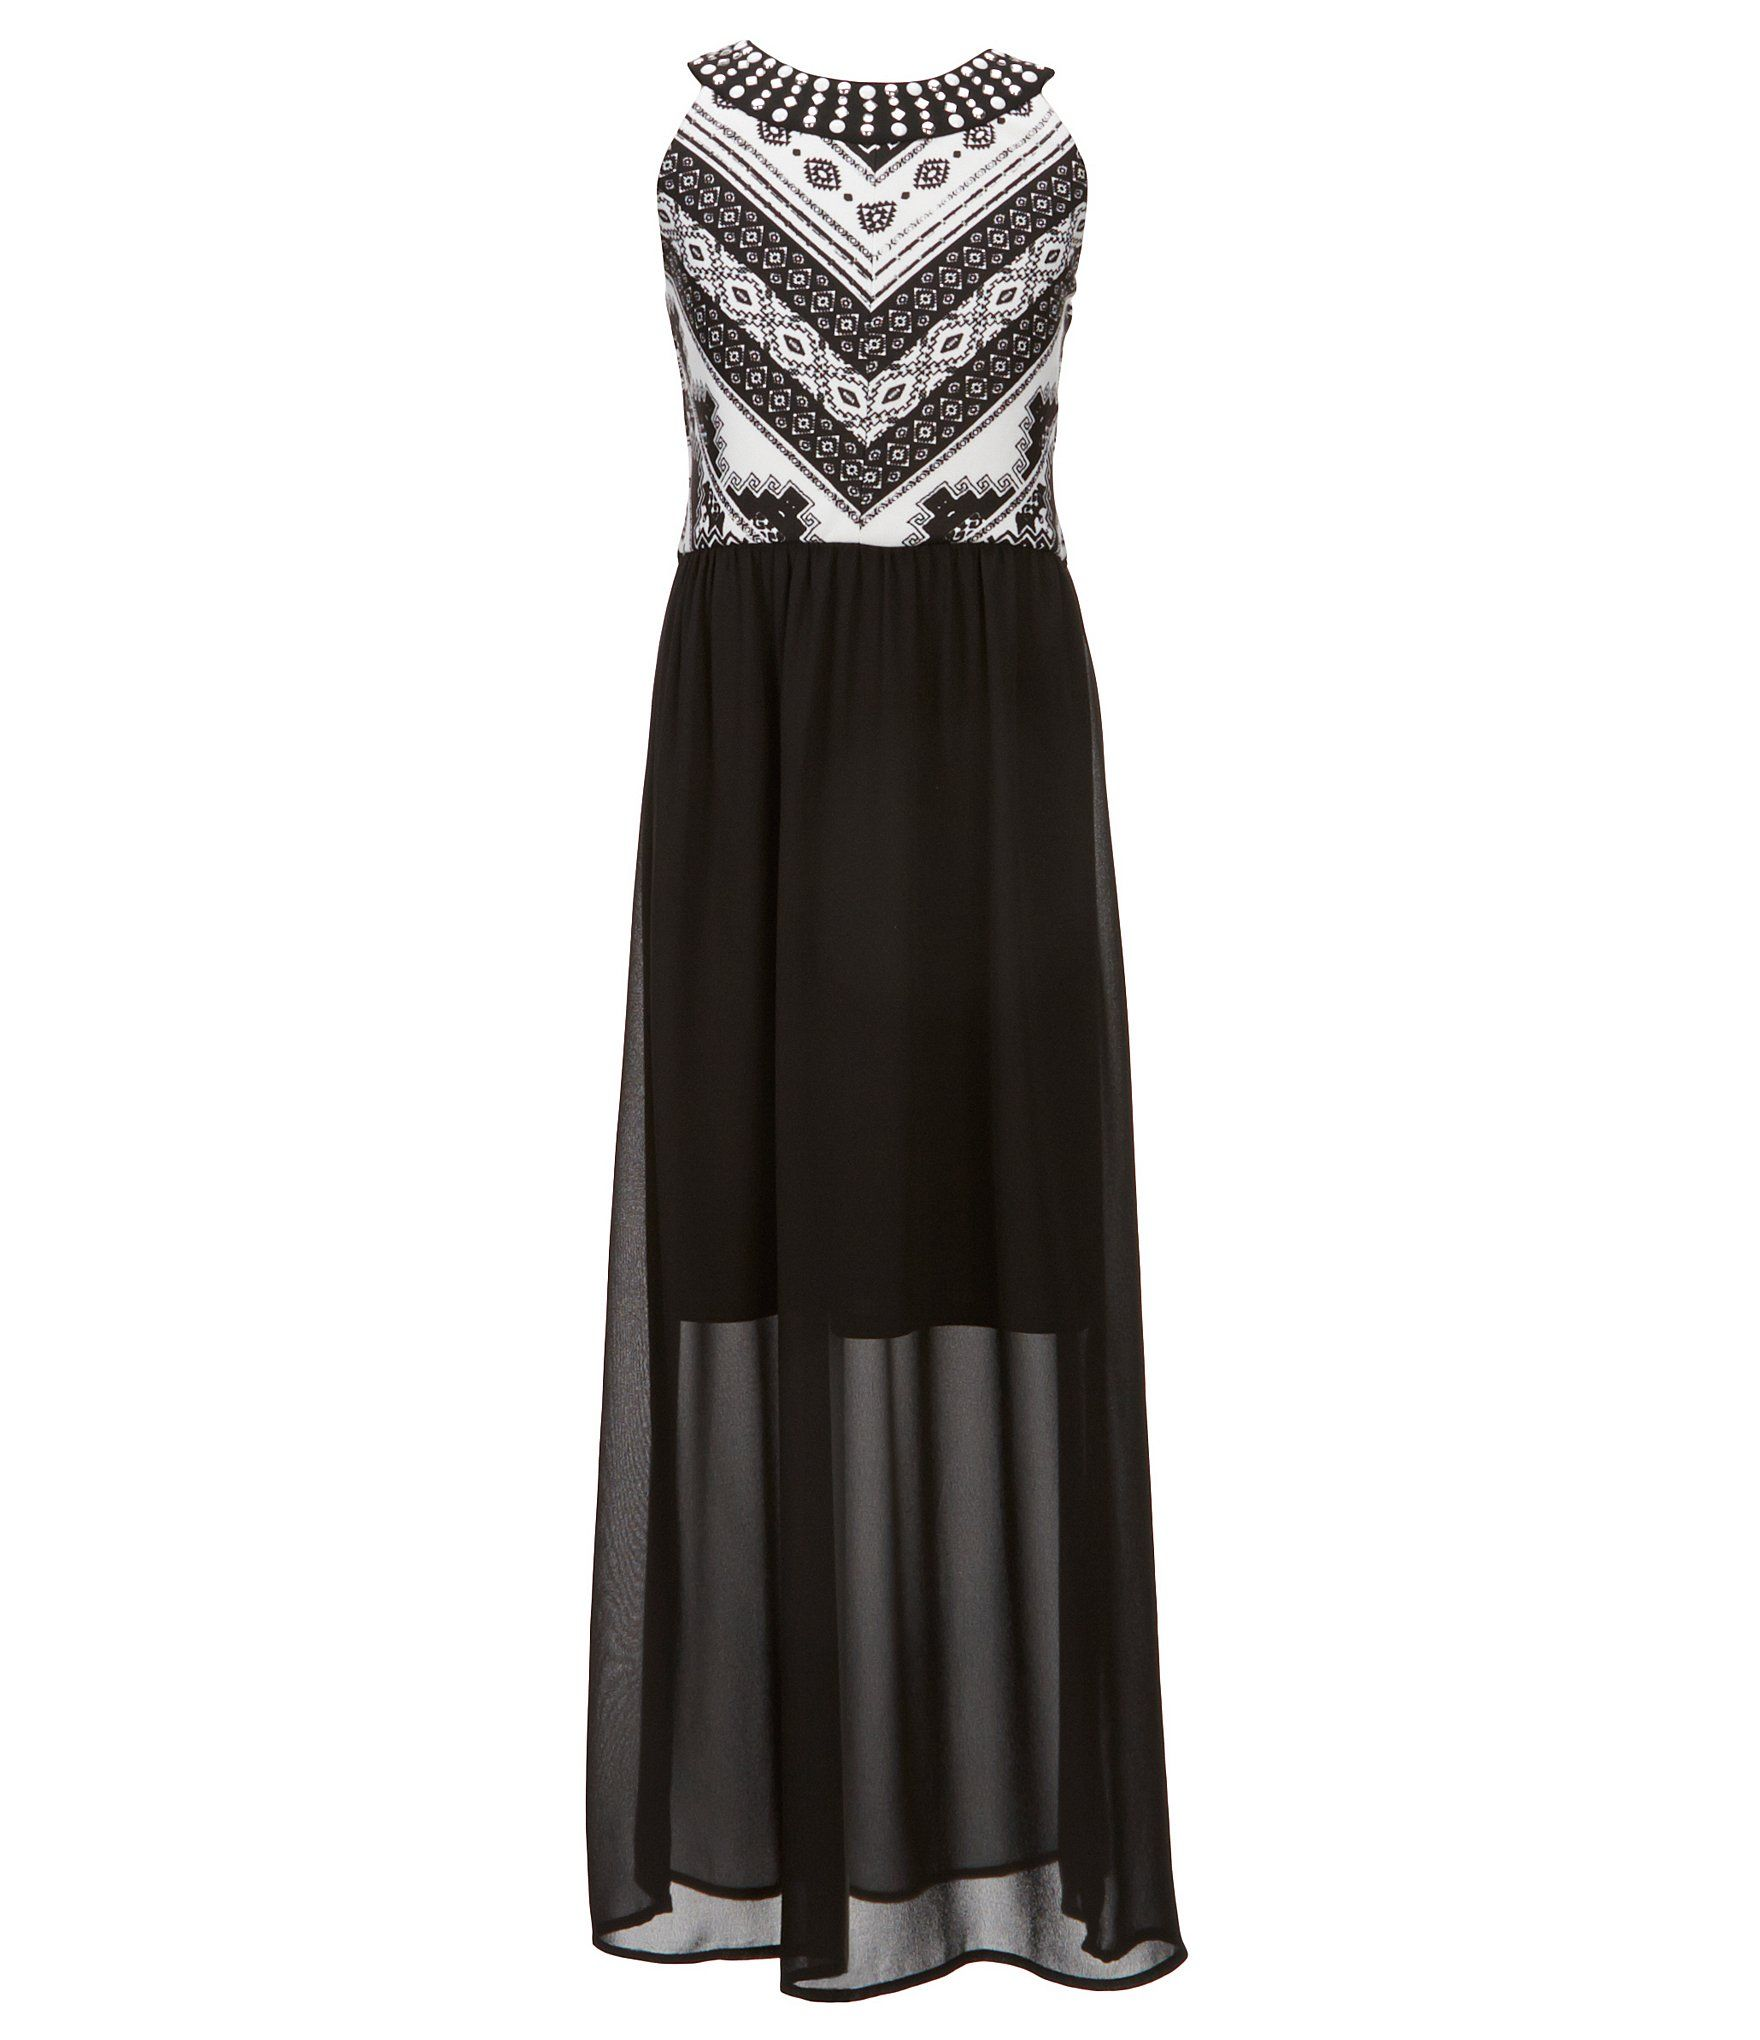 fd184e5e0 Shop for I.N. Girl Big Girls 7-16 Beaded-Neck Maxi Dress at Dillards.com.  Visit Dillards.com to find clothing, accessories, shoes, cosmetics & more.